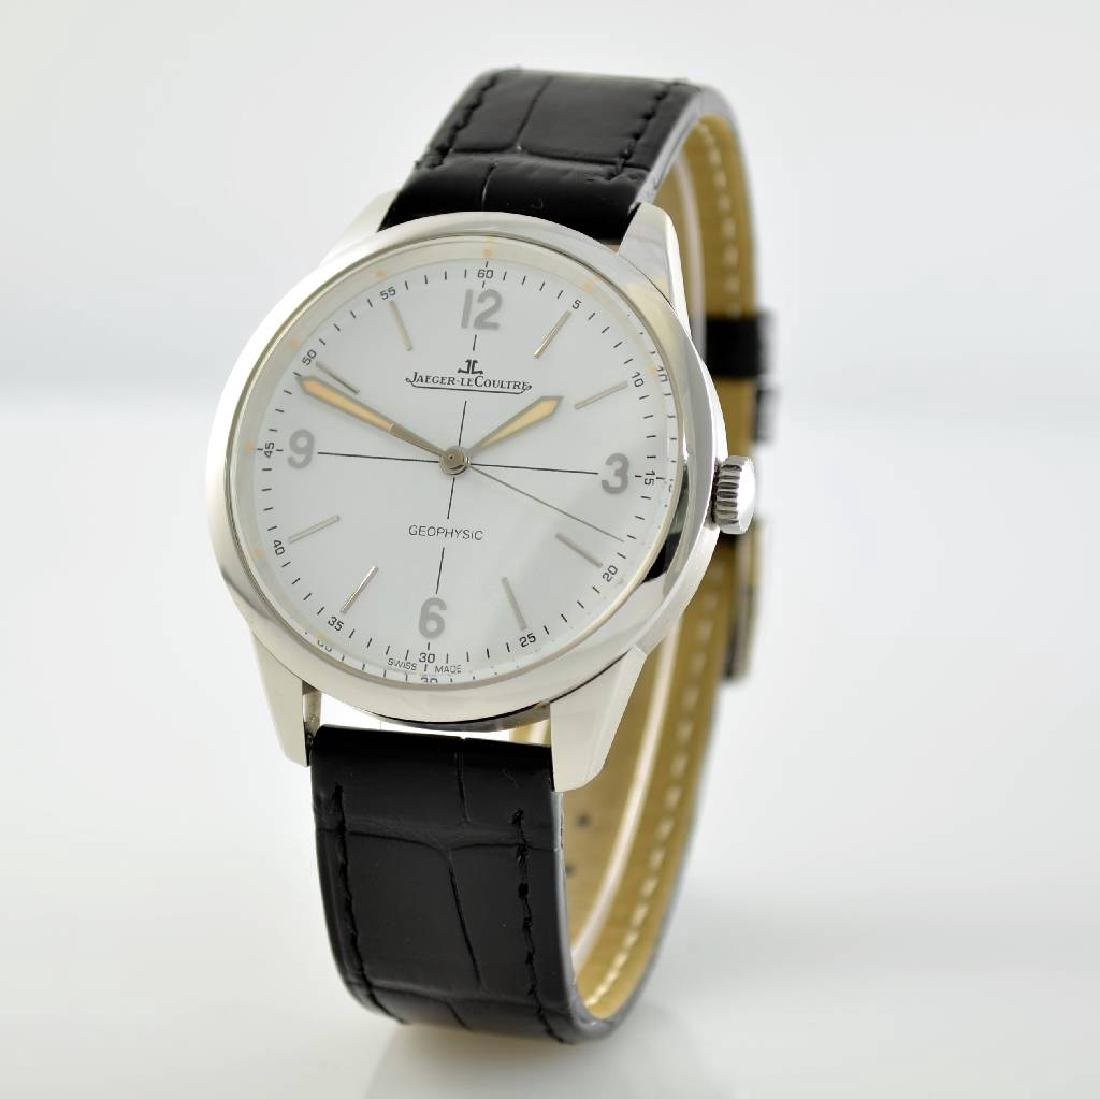 Jaeger-LeCoultre Geophysic 1958 limited gents - 3